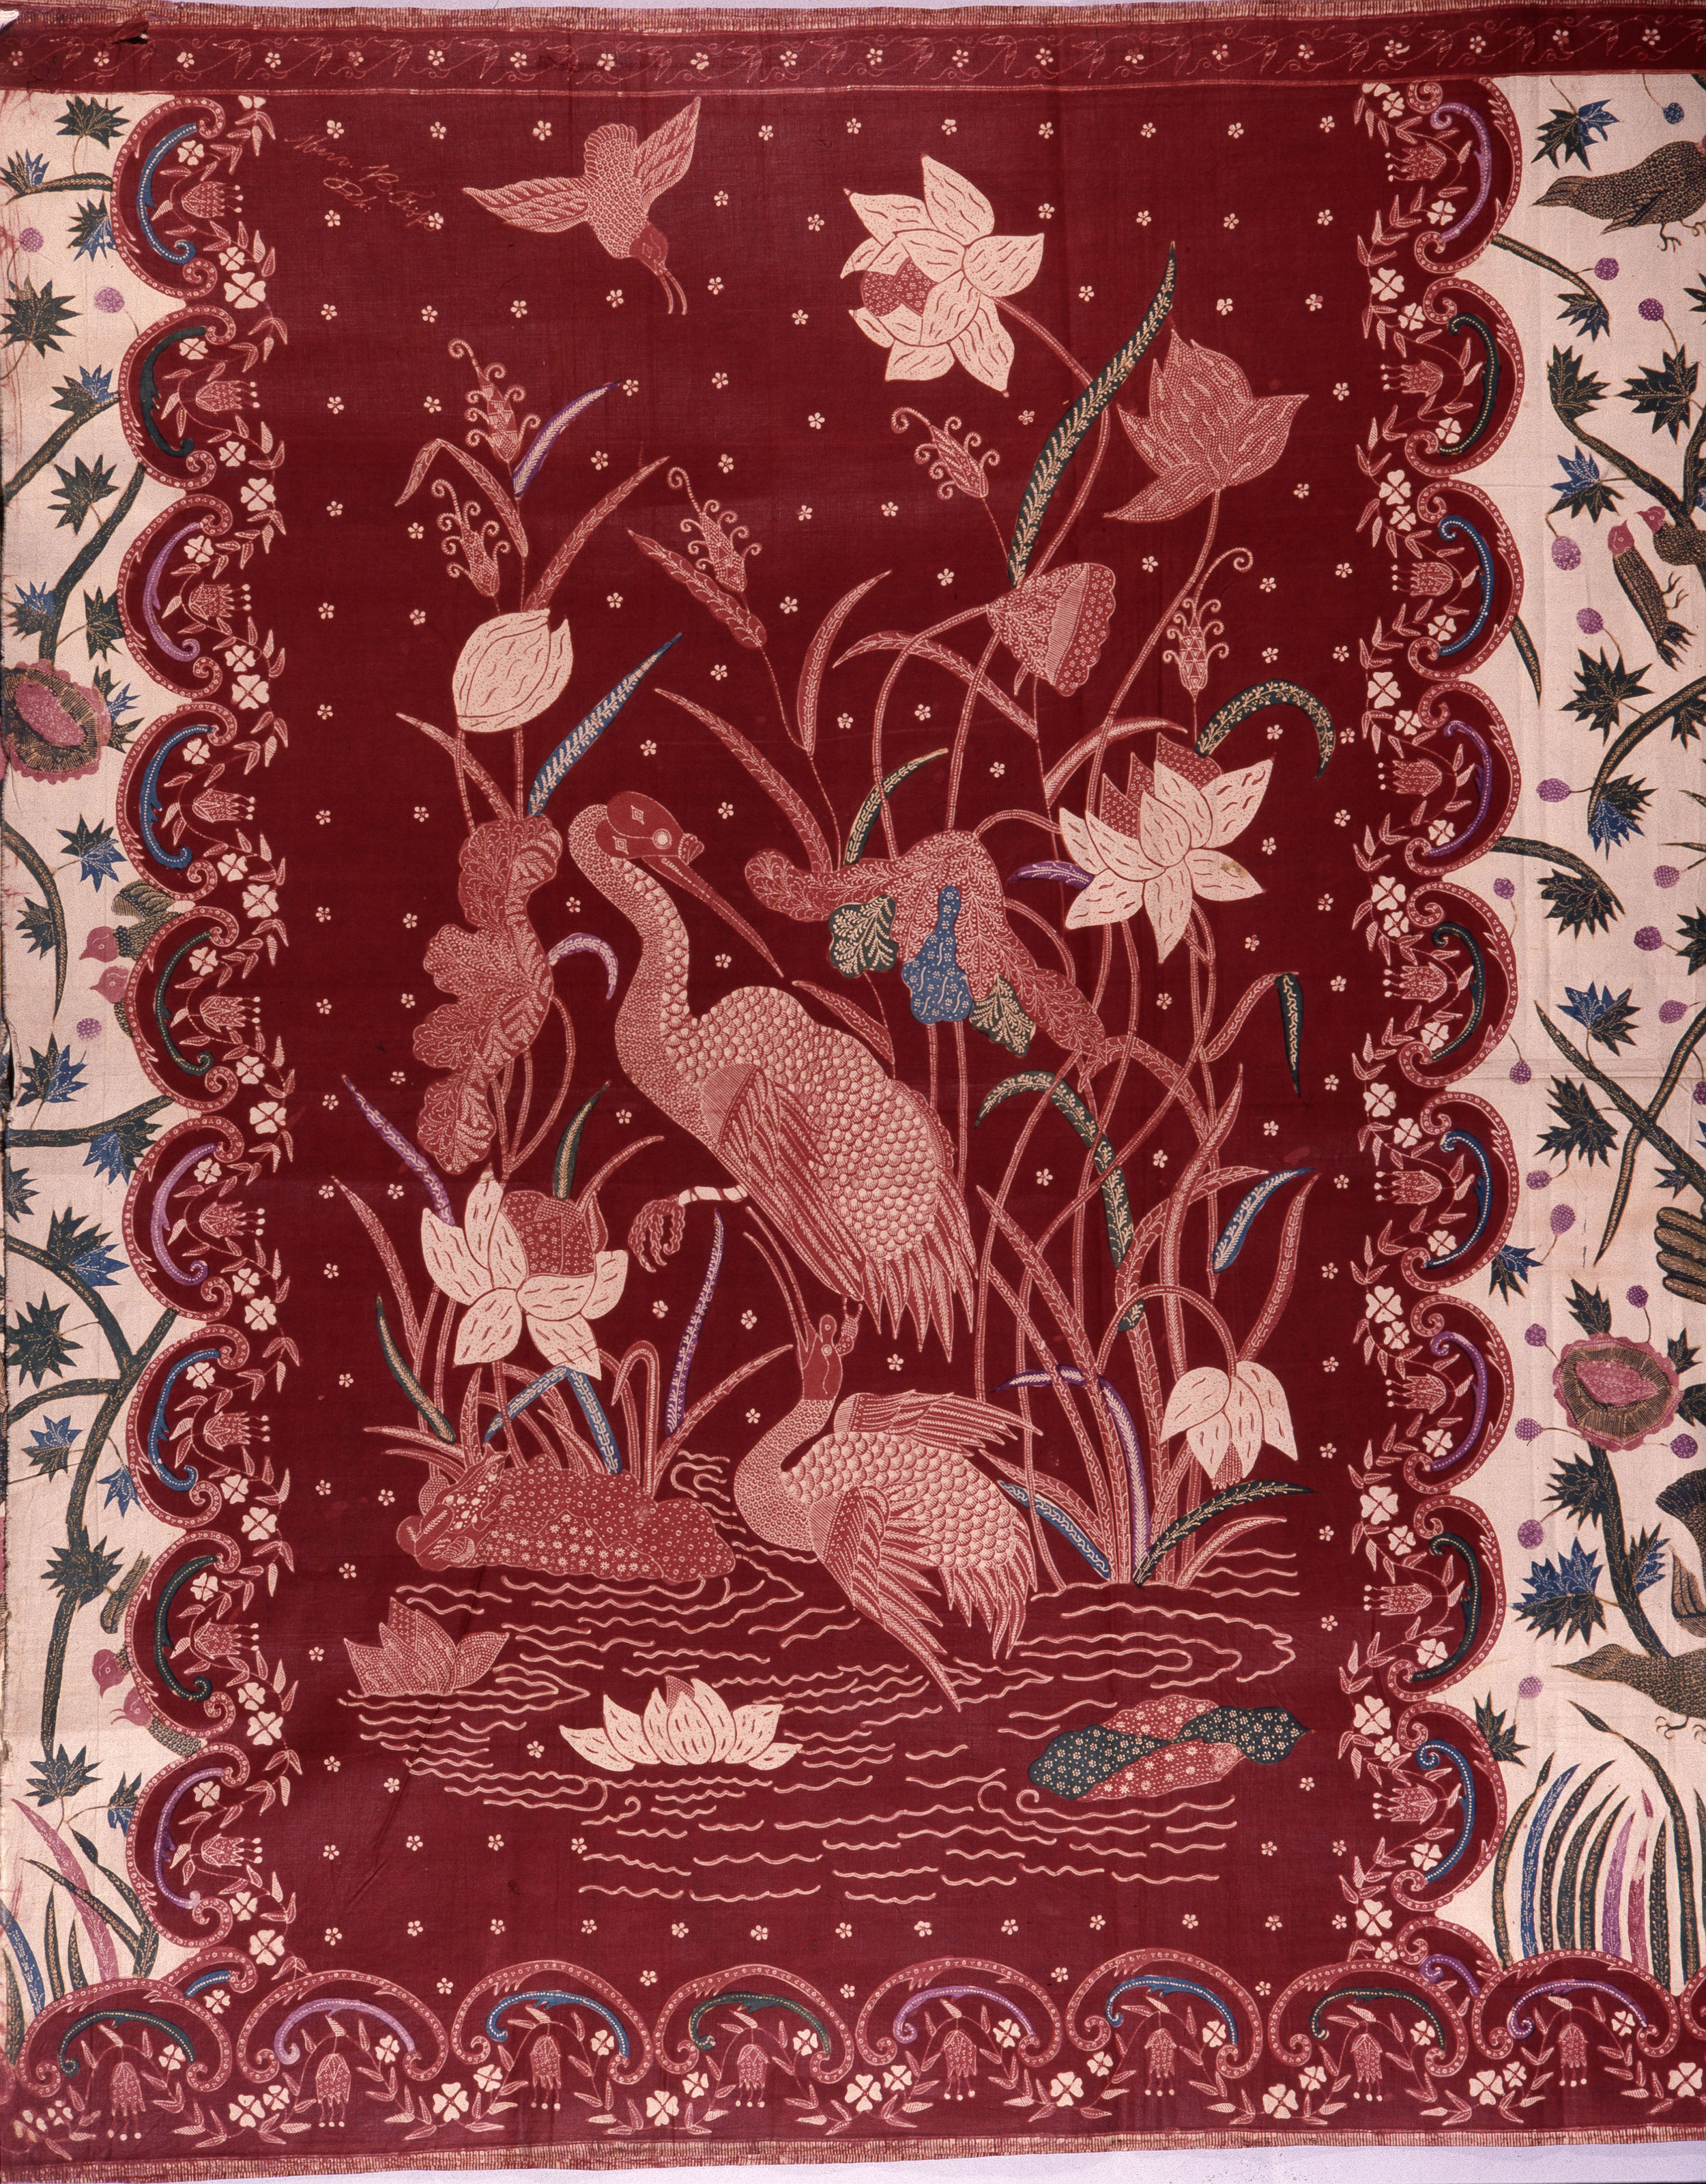 A detail of the design on a batik sarong which incorporates herons and other birds, flowers and water plants. Country of Origin: Indonesia. Culture: Javanese. Date/Period: c.1920. Place of Origin: north coast of Java. Material Size: Glazed cotton. Credit Line: Werner Forman Archive/ British Museum, London.